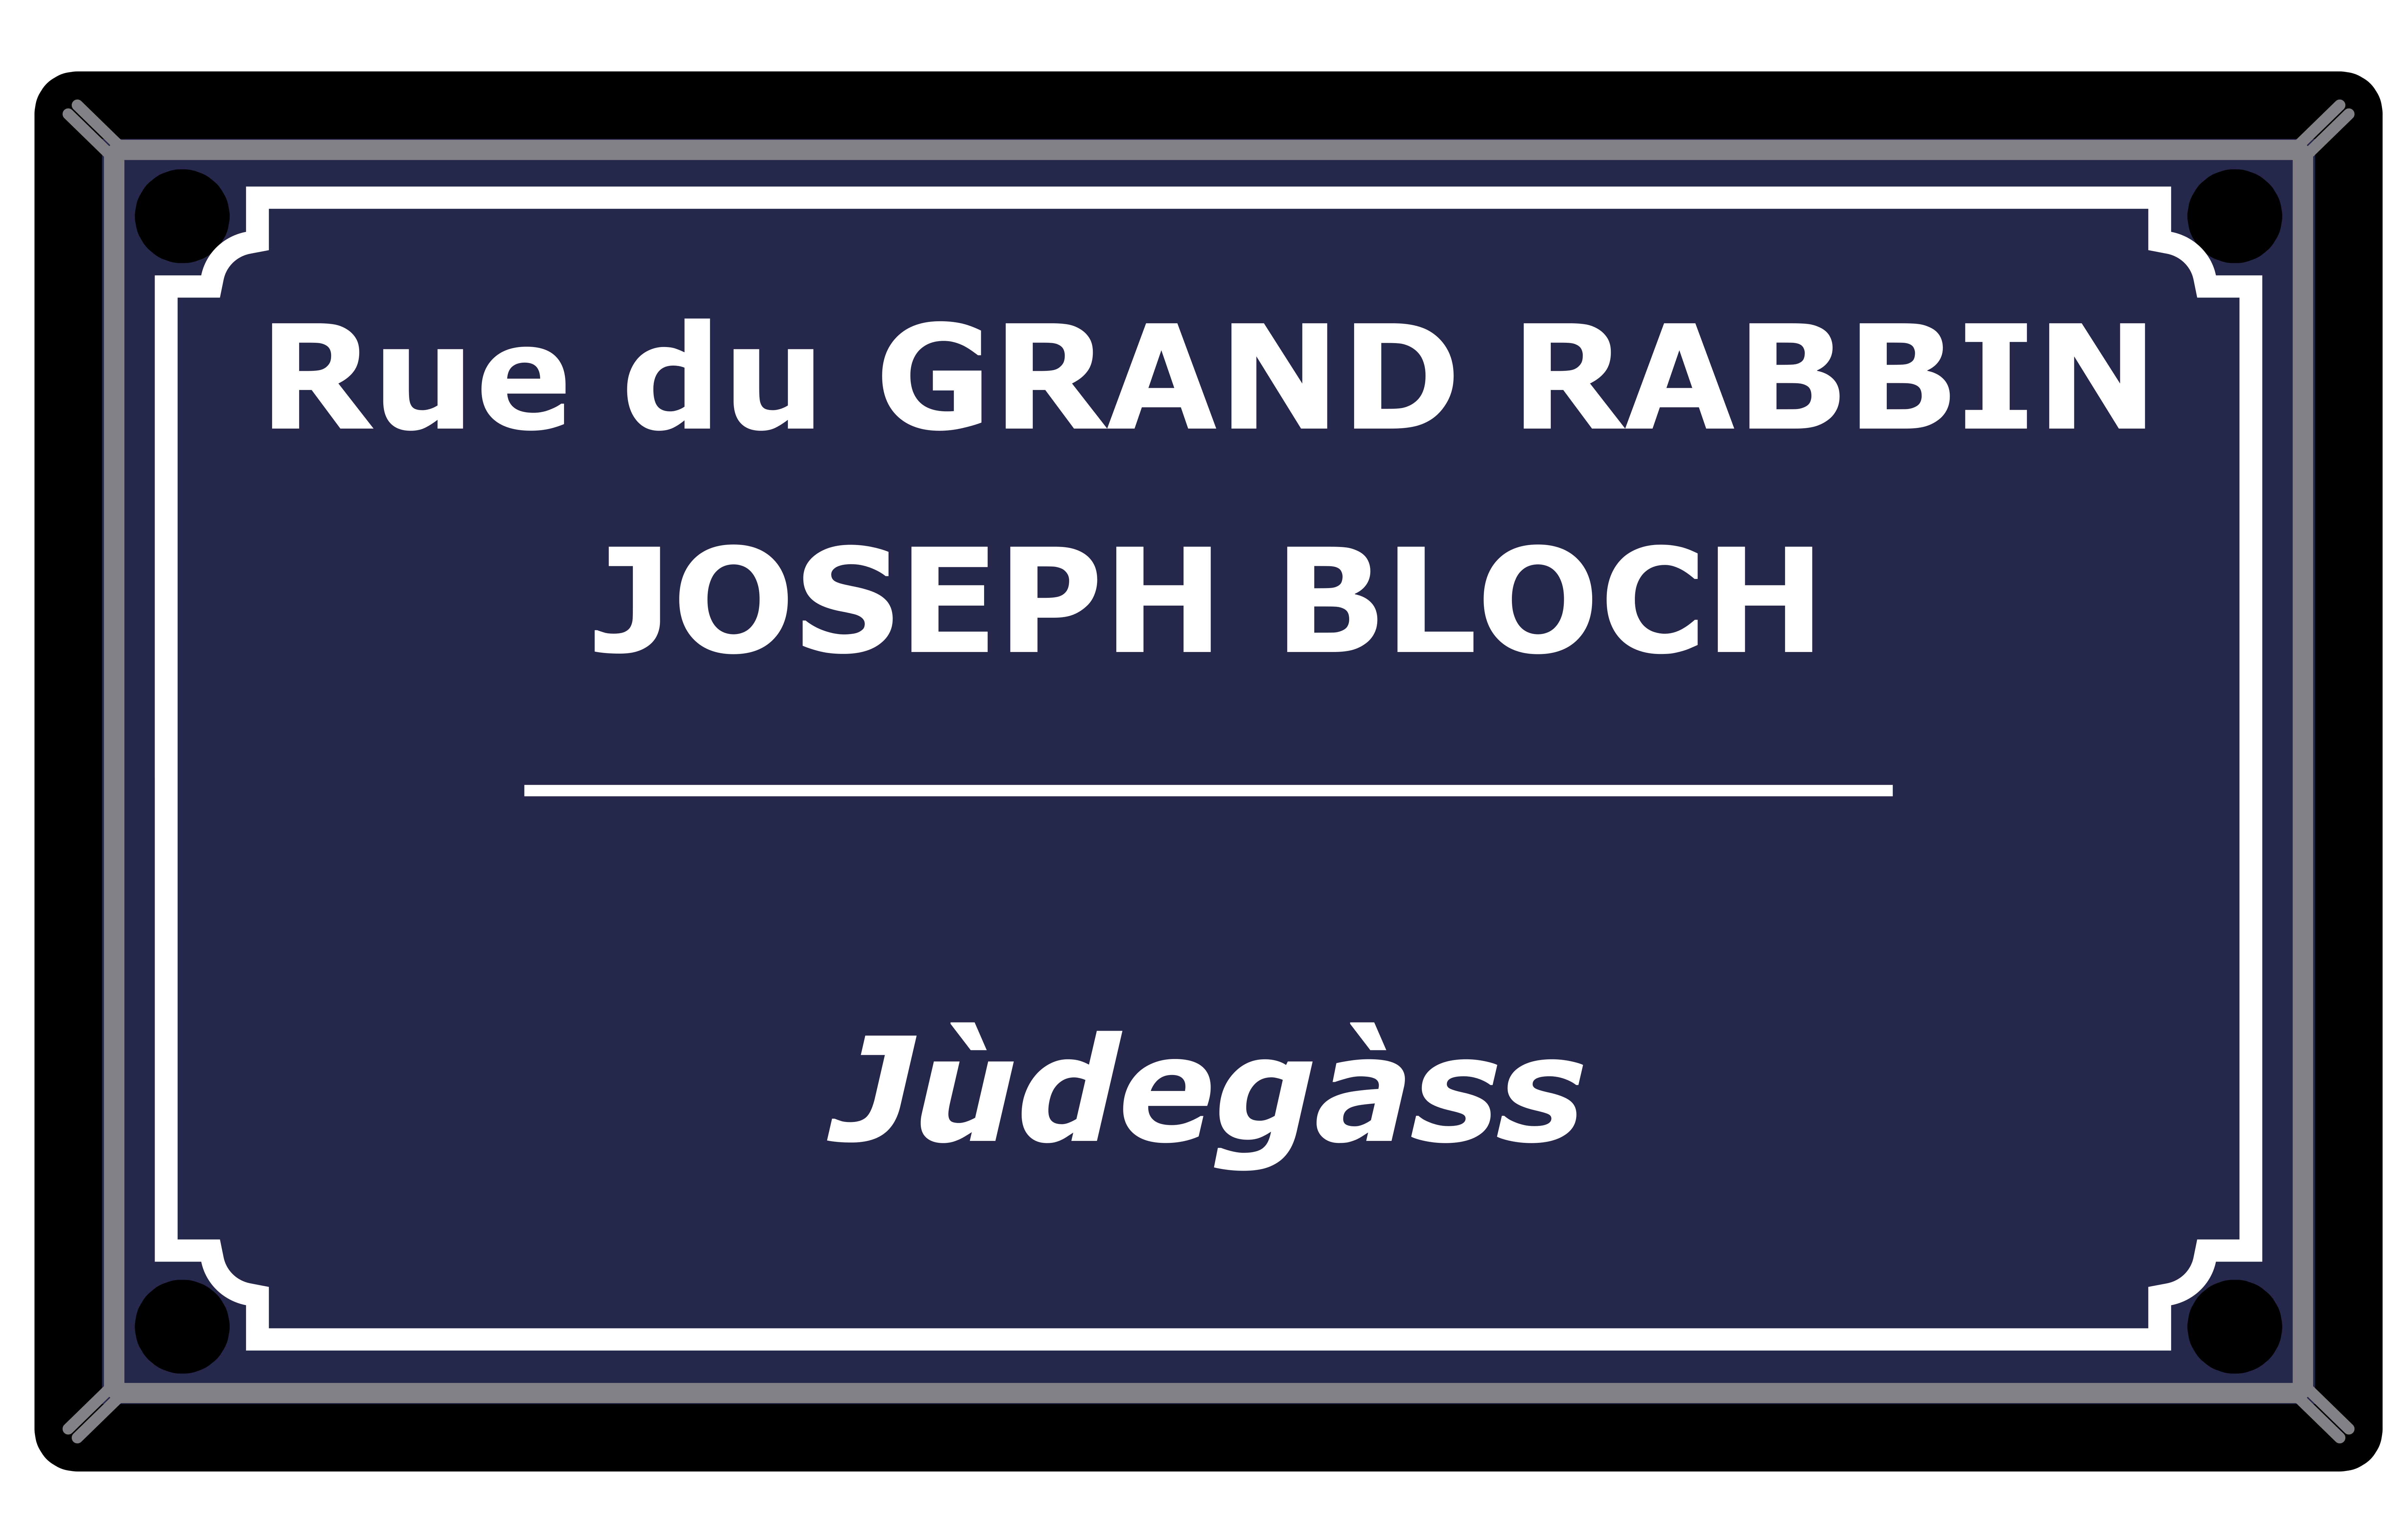 RUE GRAND RABBIN JOSEPH BLOCH